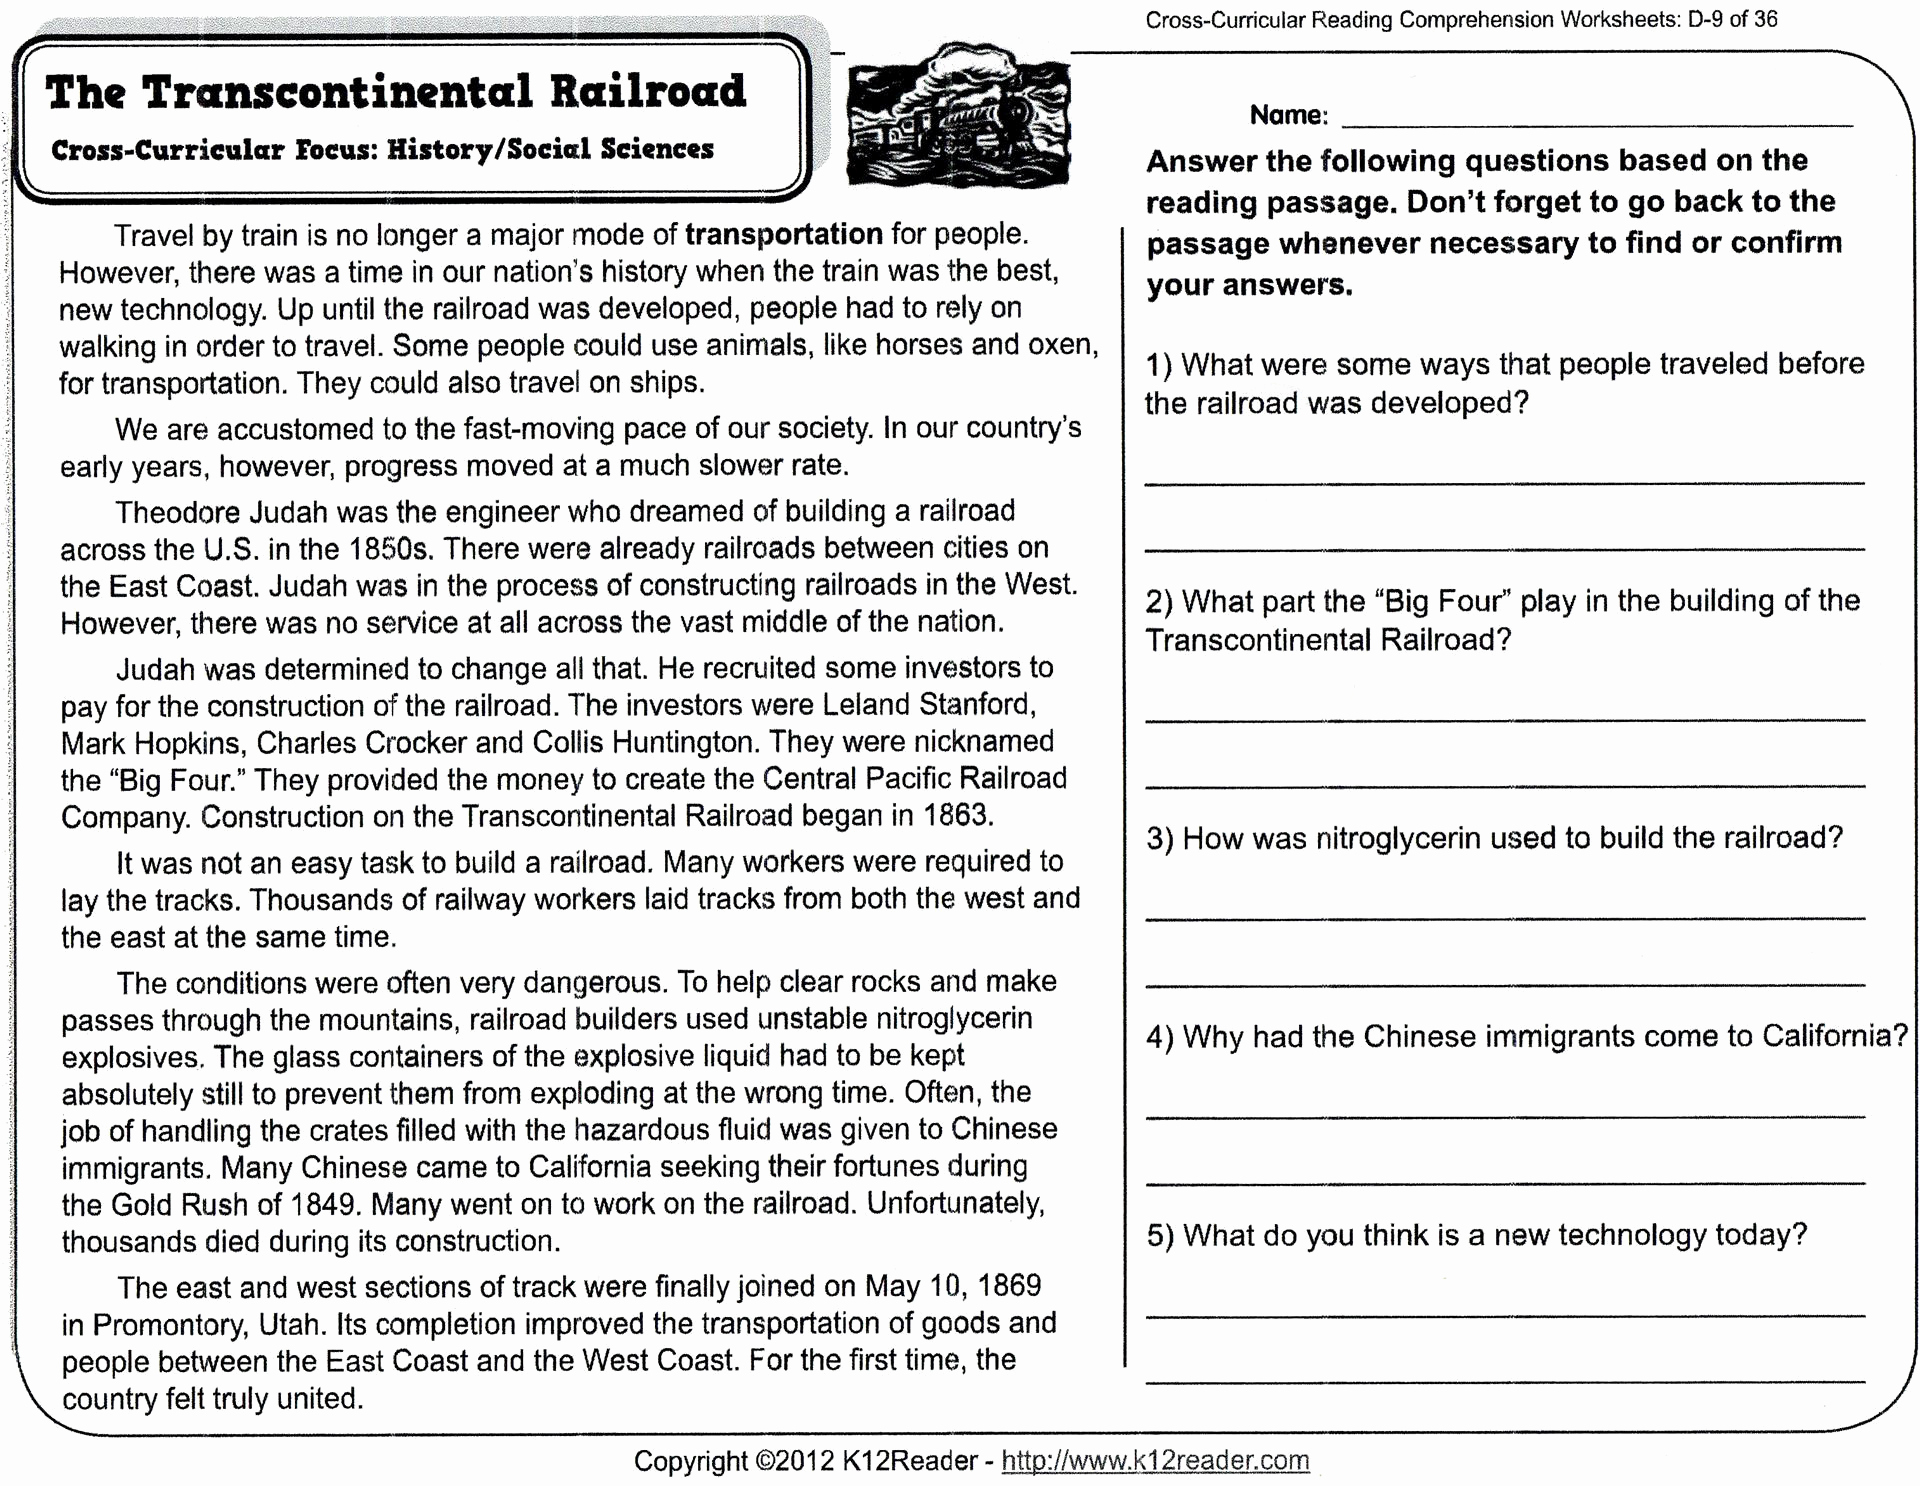 8th Grade Reading Worksheets Luxury Reading Prehension Worksheets for 8th Grade Free Report